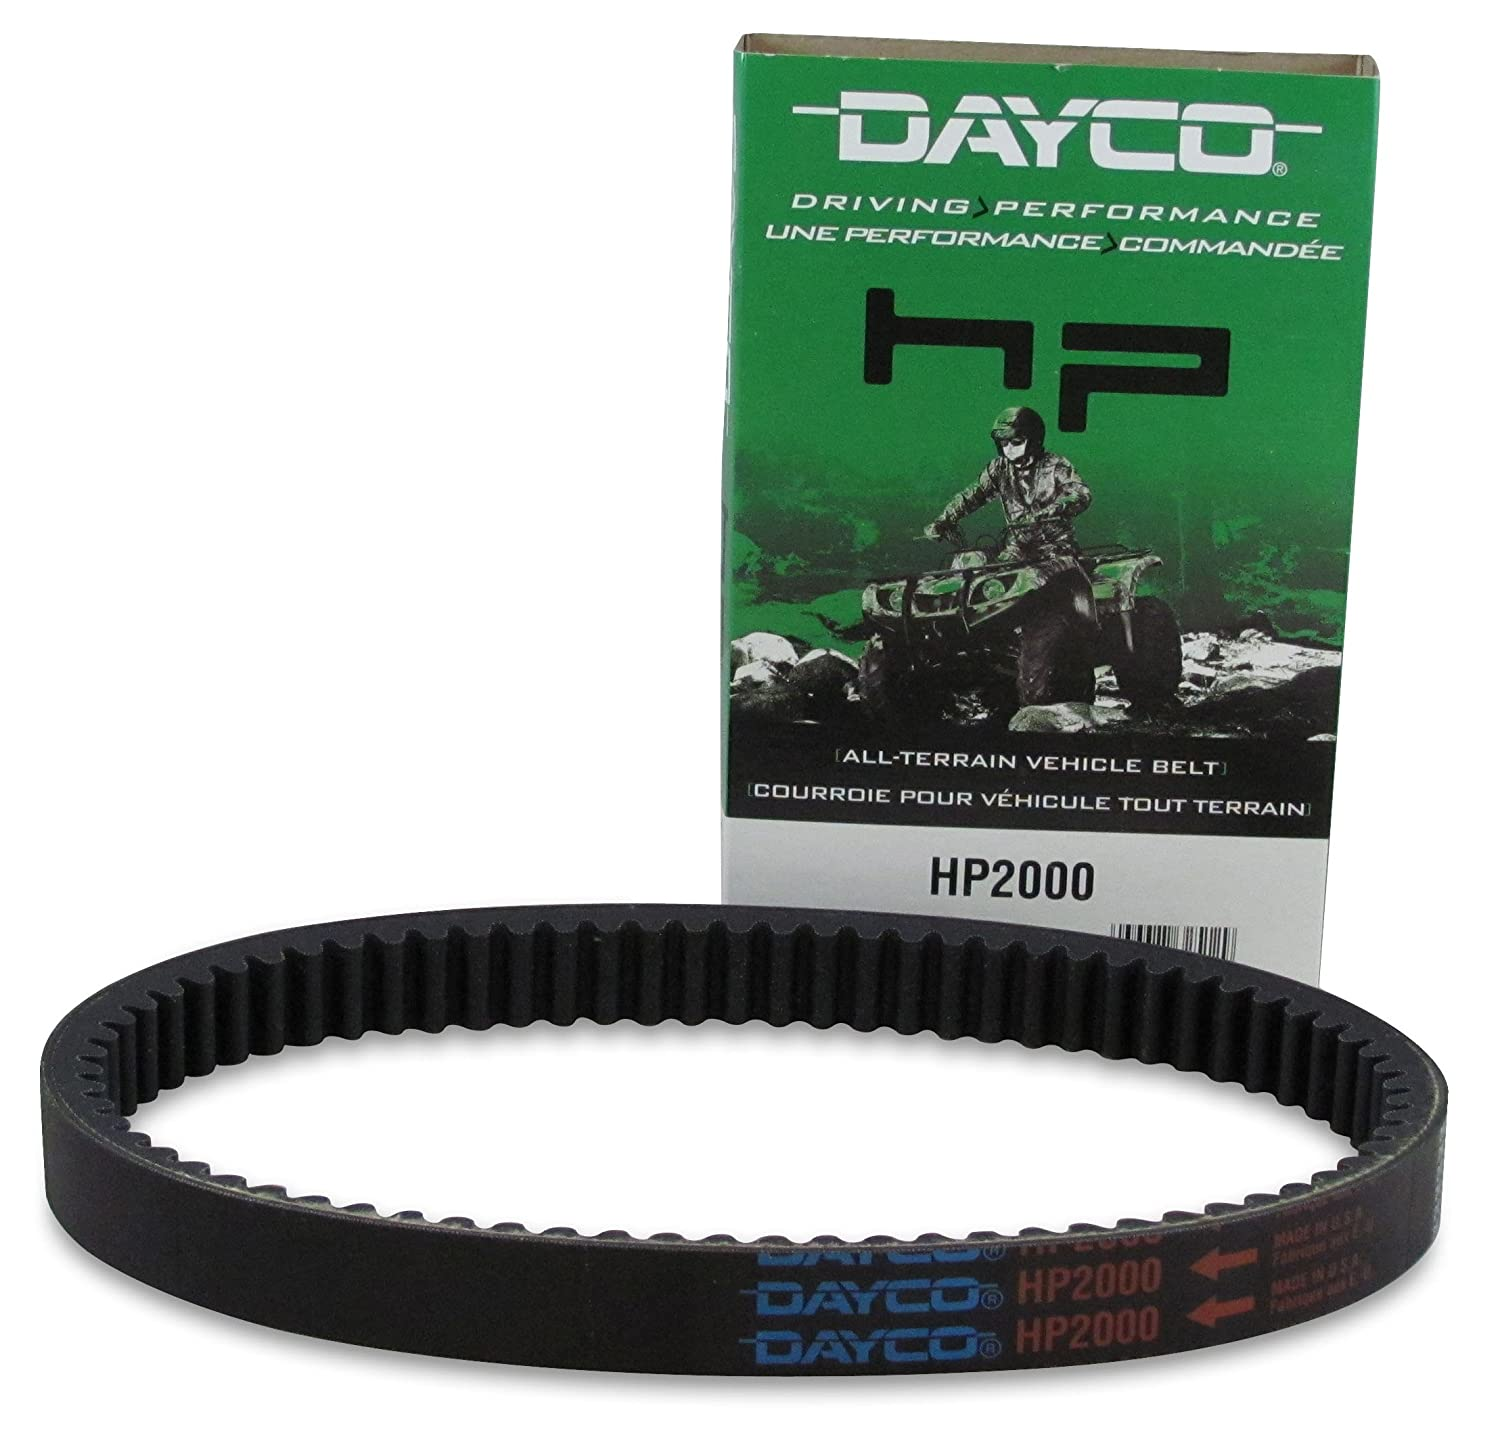 Dayco HP2000 Outdoor Activity Belt